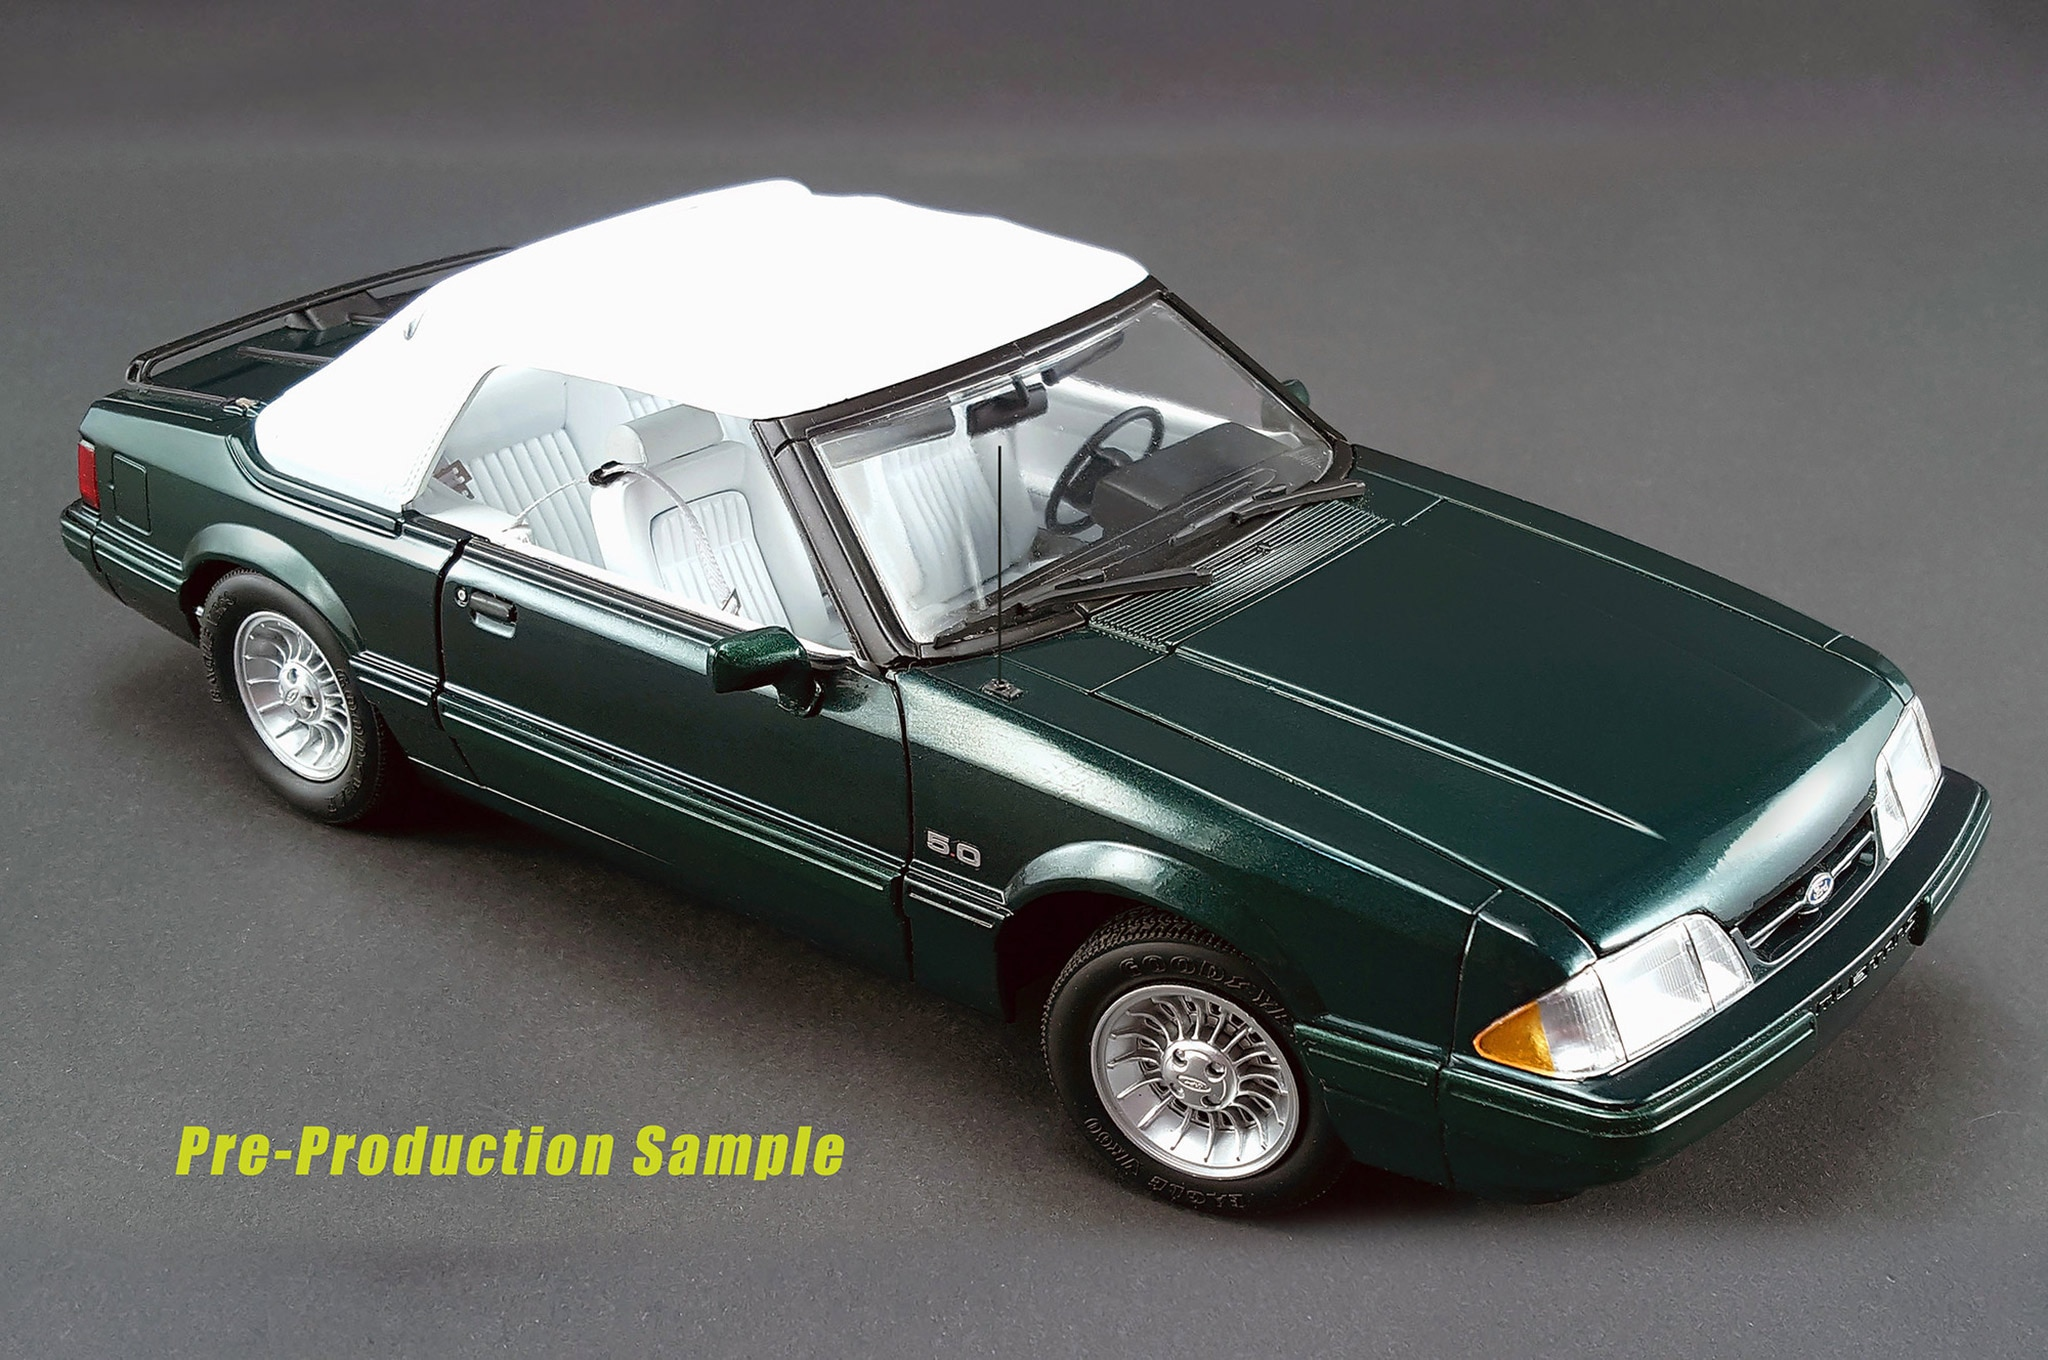 01 1990 limited edition 7 up mustang convertible top up photo